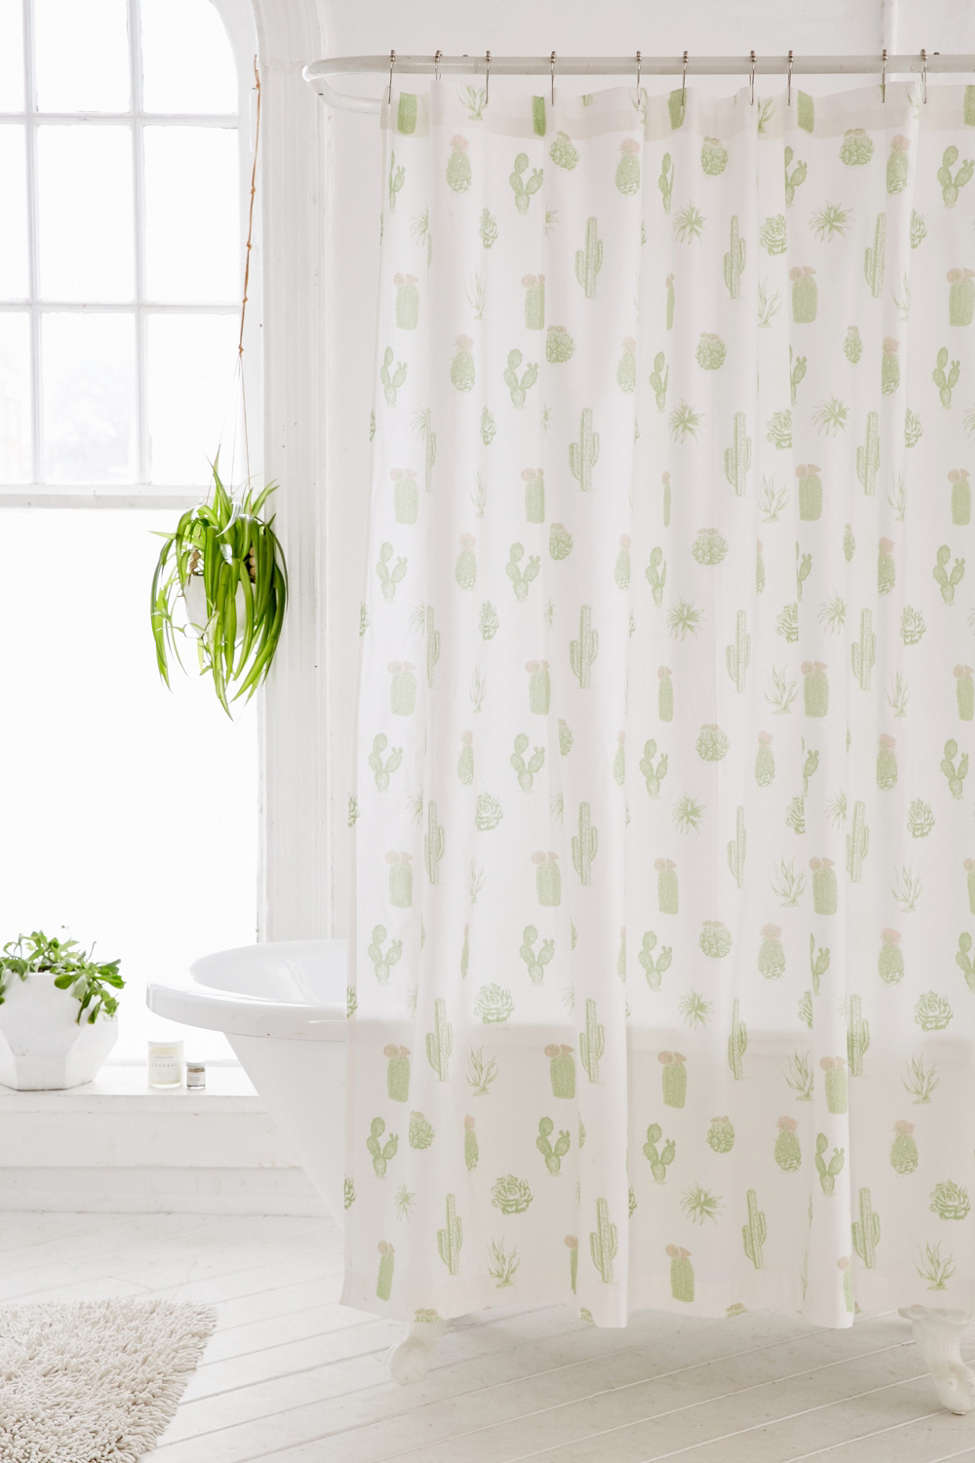 Slide View: 1: Cactus Icon Shower Curtain